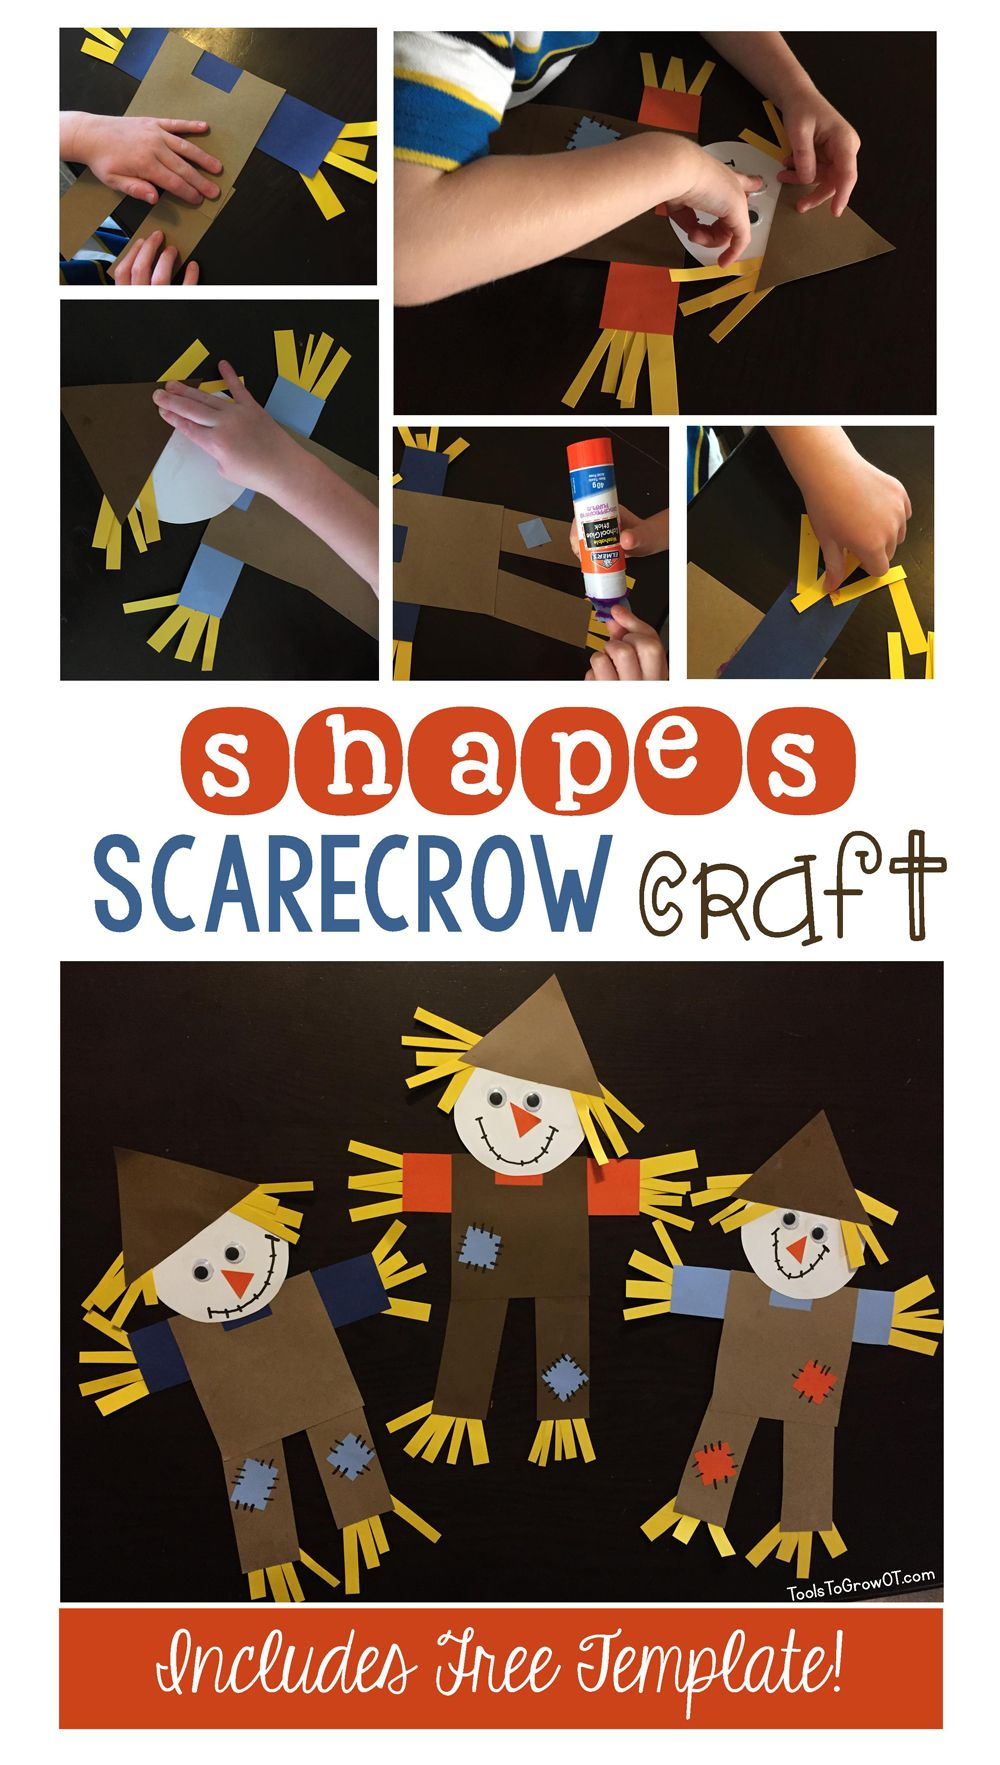 Shapes Scarecrow Craft | Pediatric/School Based OT/PT Blog Posts ...